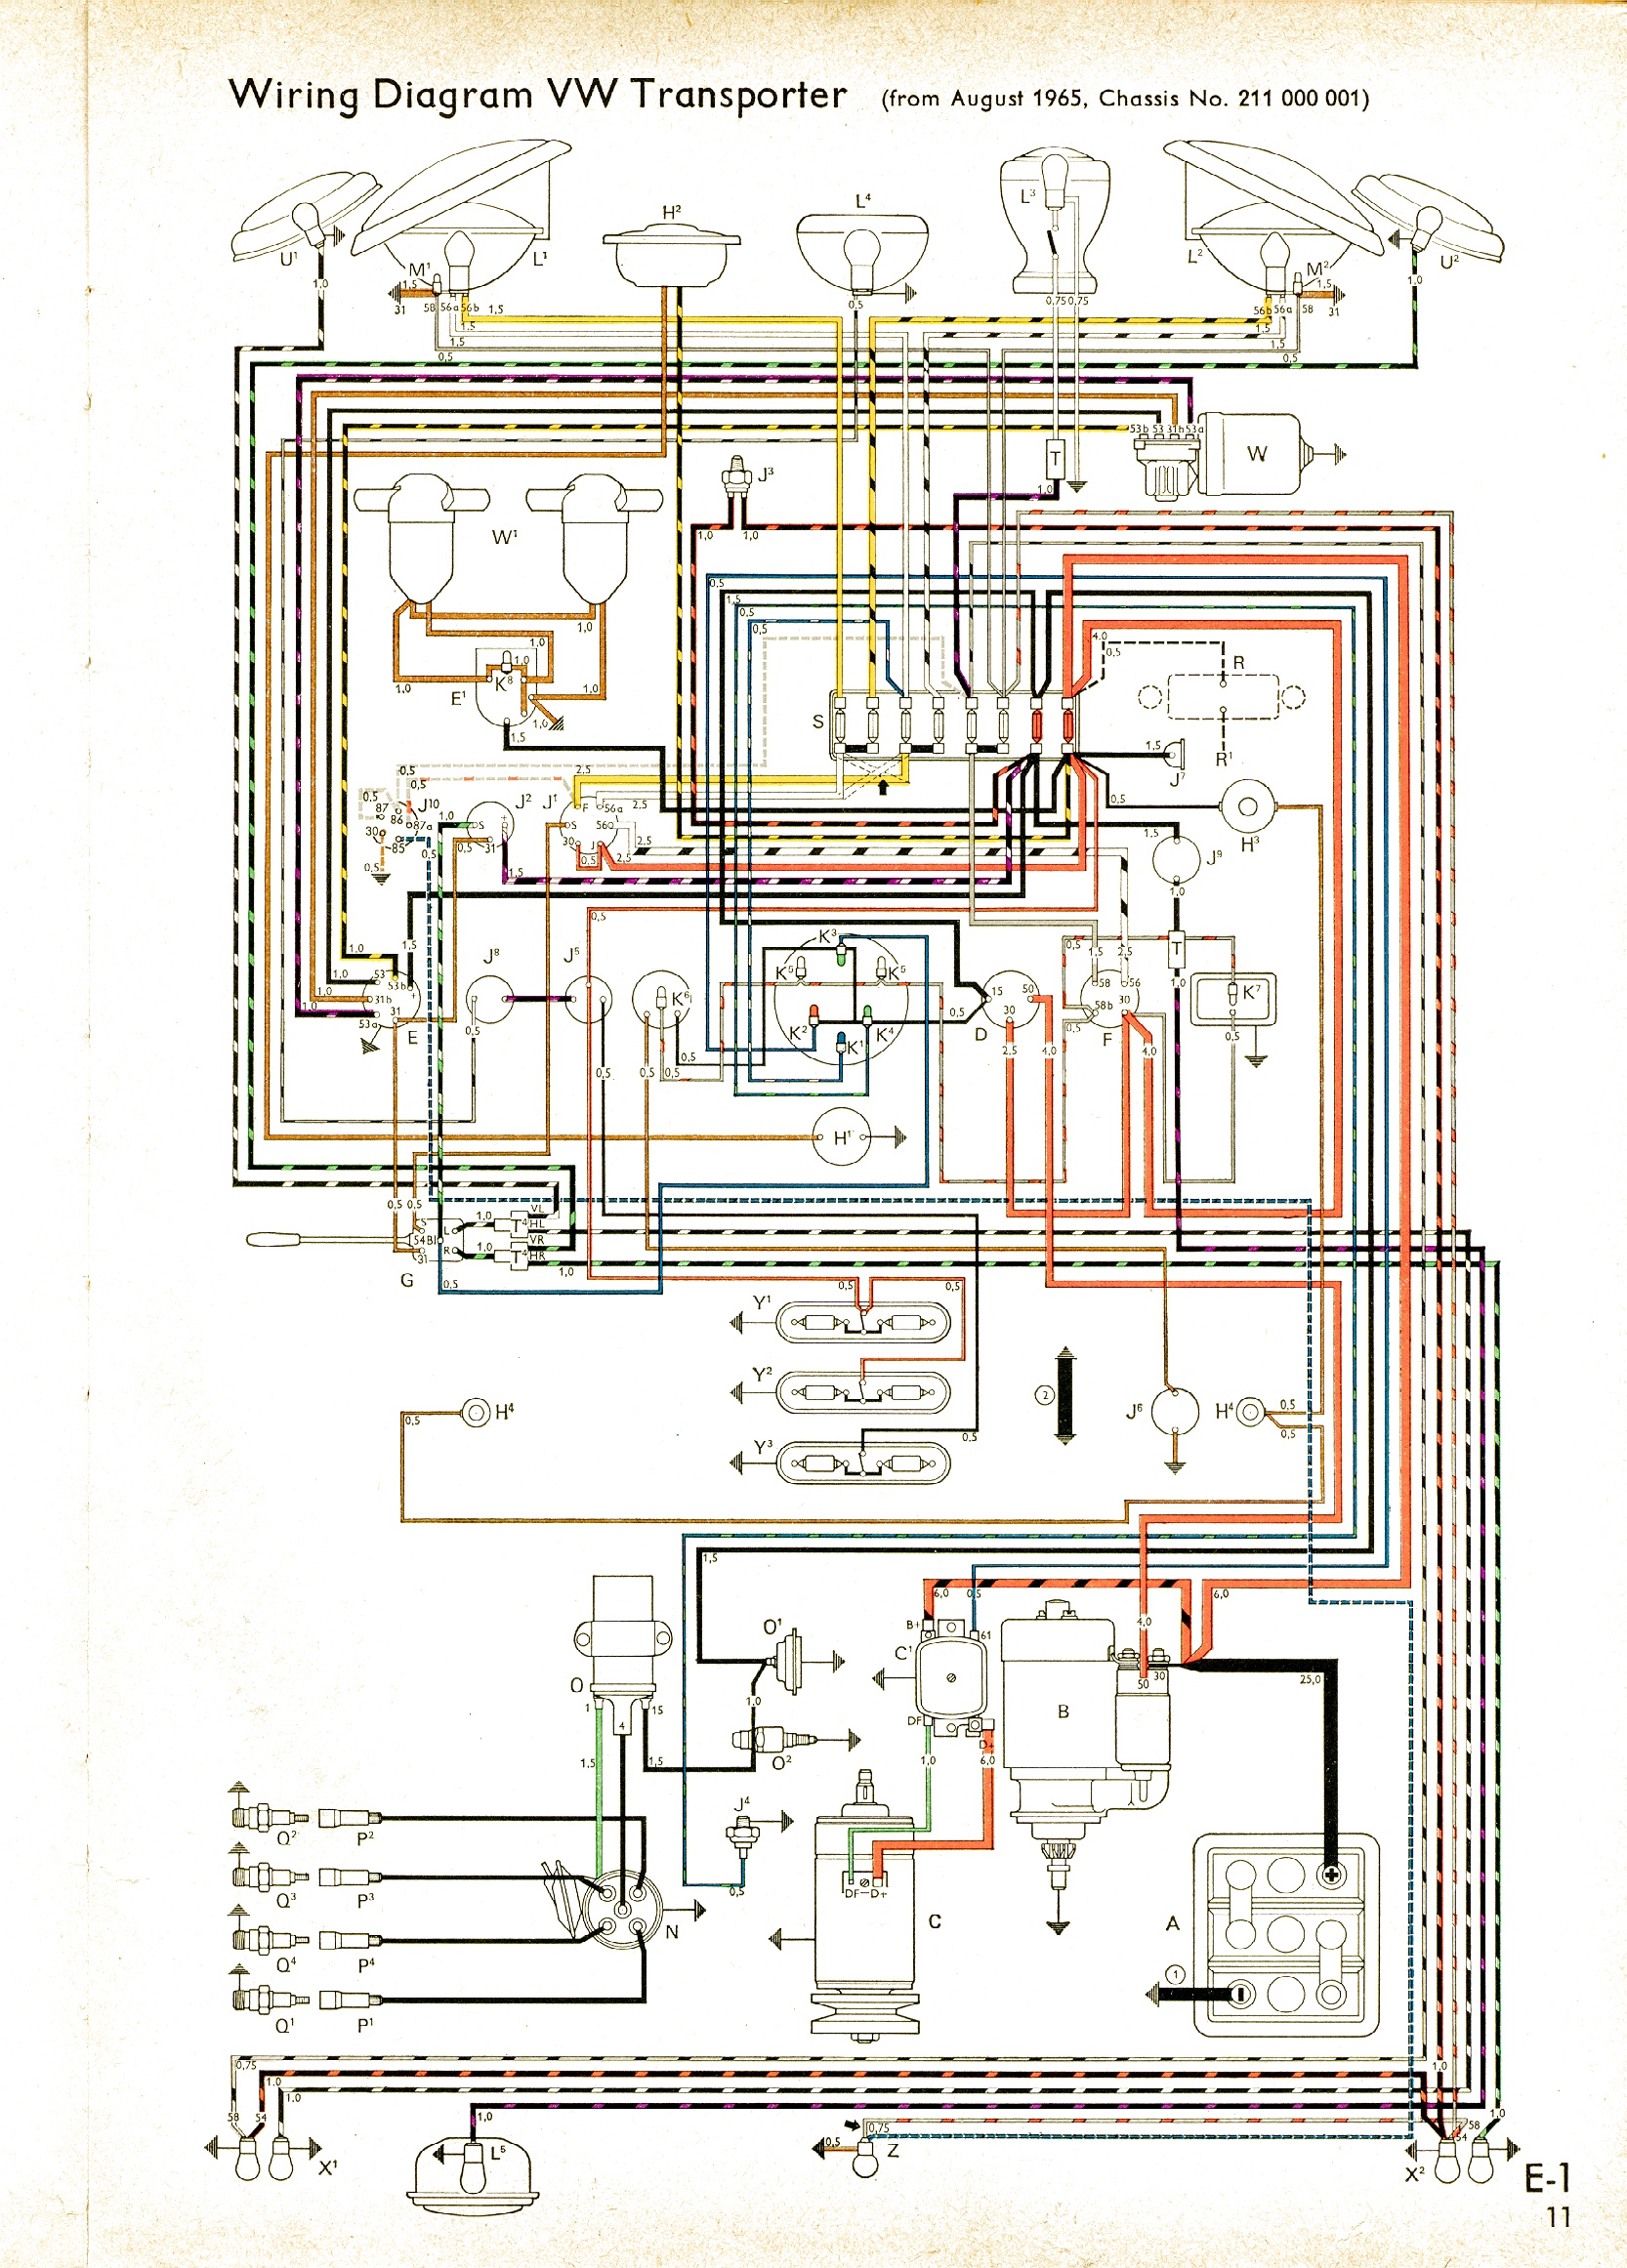 bus 65 bus wiring diagram vw wiring harness diagram \u2022 wiring diagrams j 2000 VW Beetle Alternator Wiring Harness at suagrazia.org